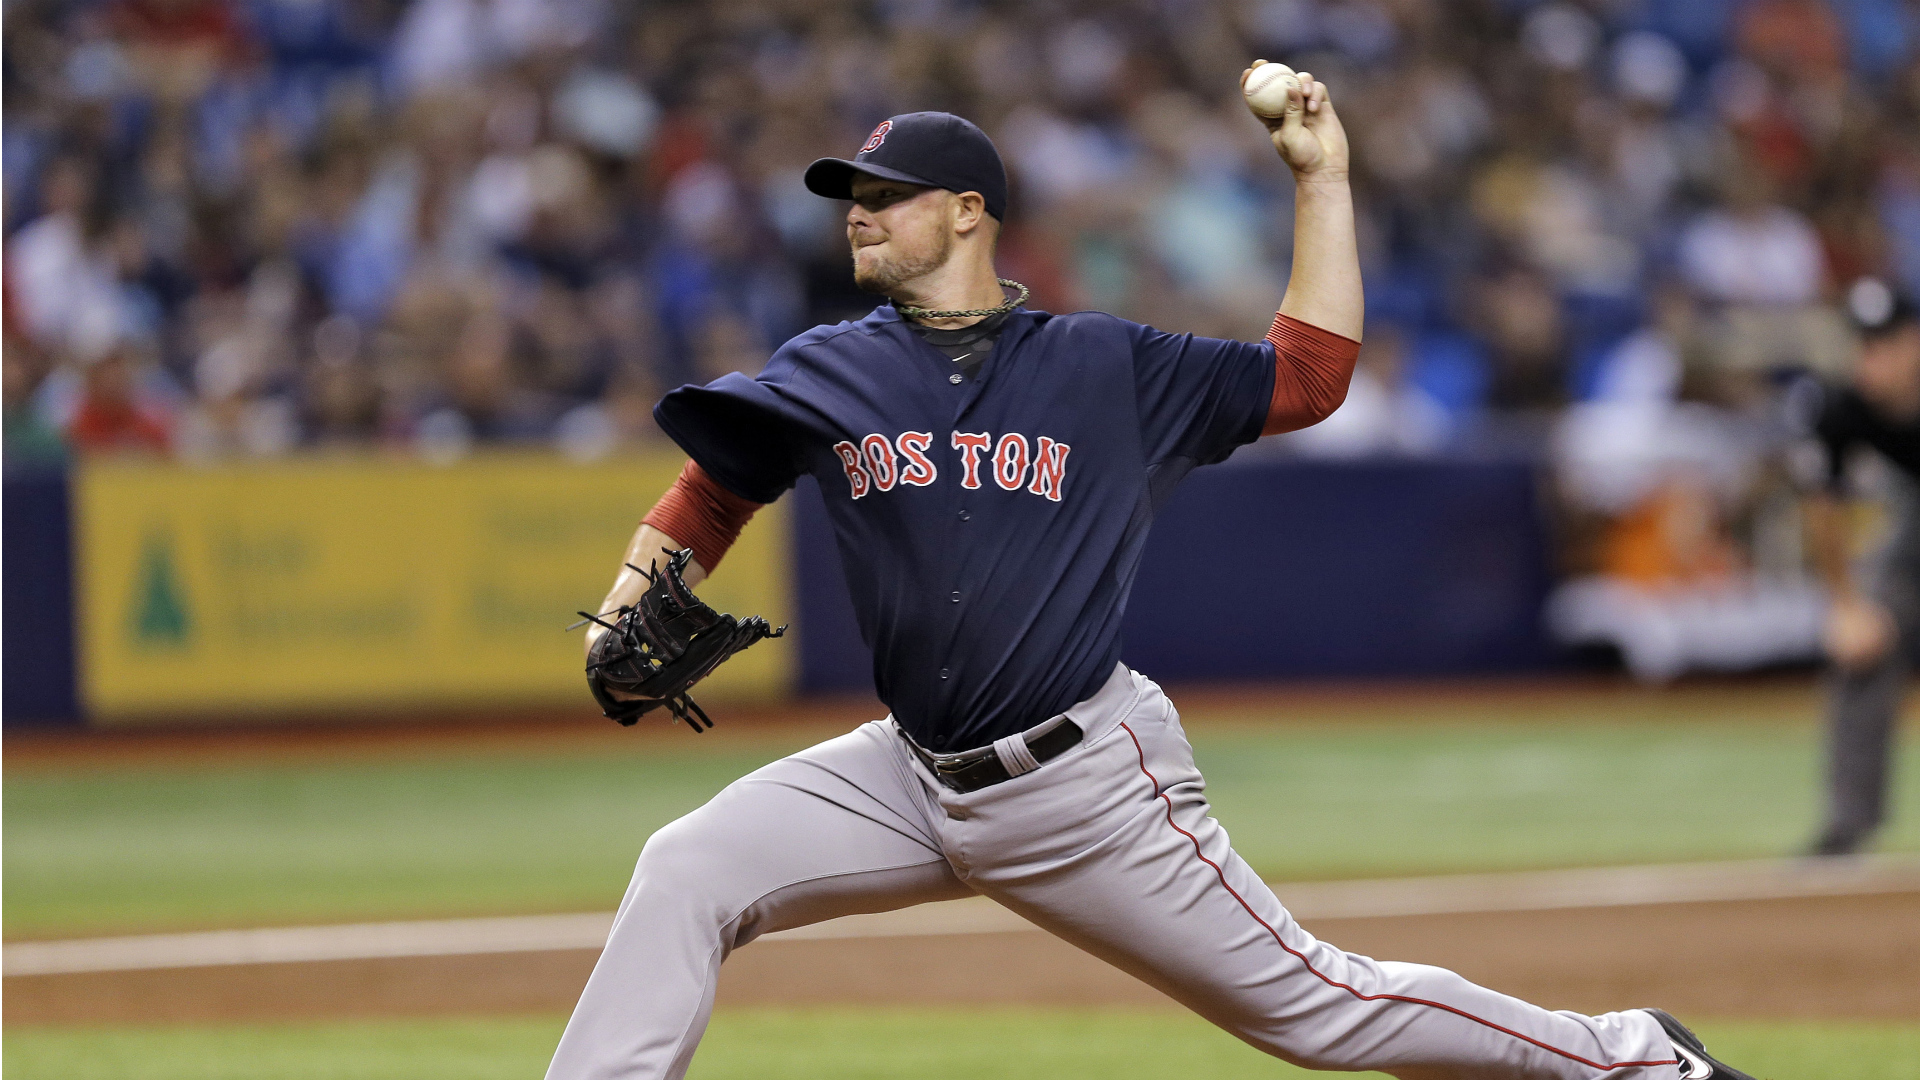 Red Sox trade Lester, Gomes to A's for Cespedes